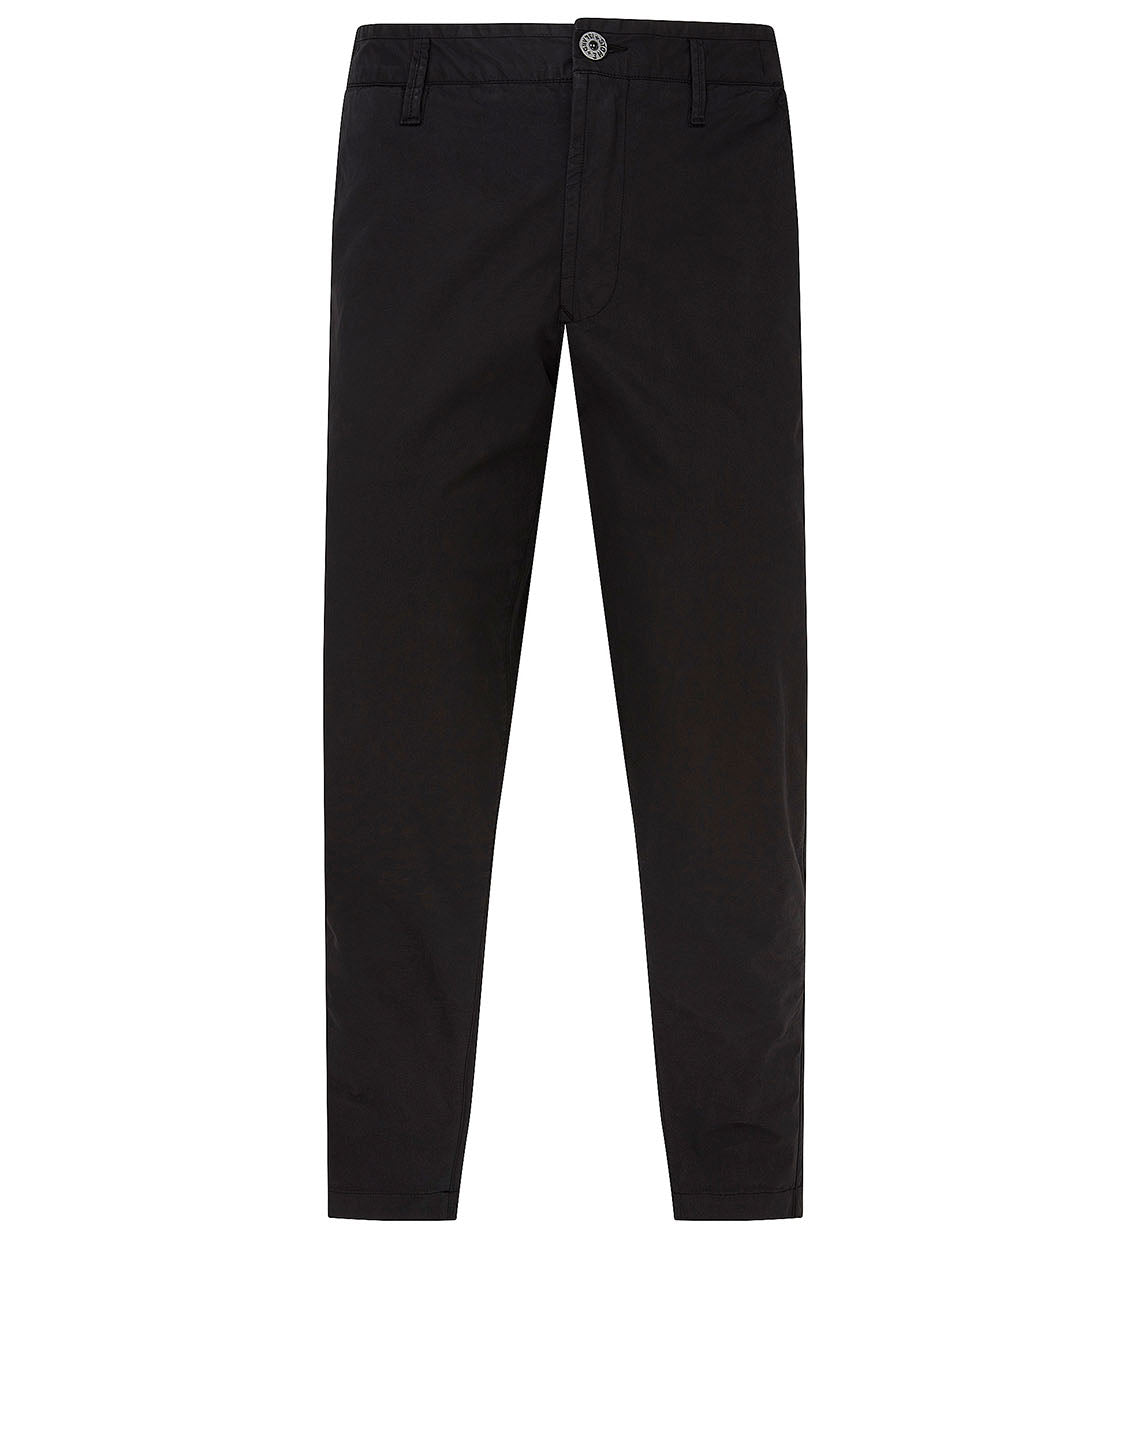 31519 Pants in Black